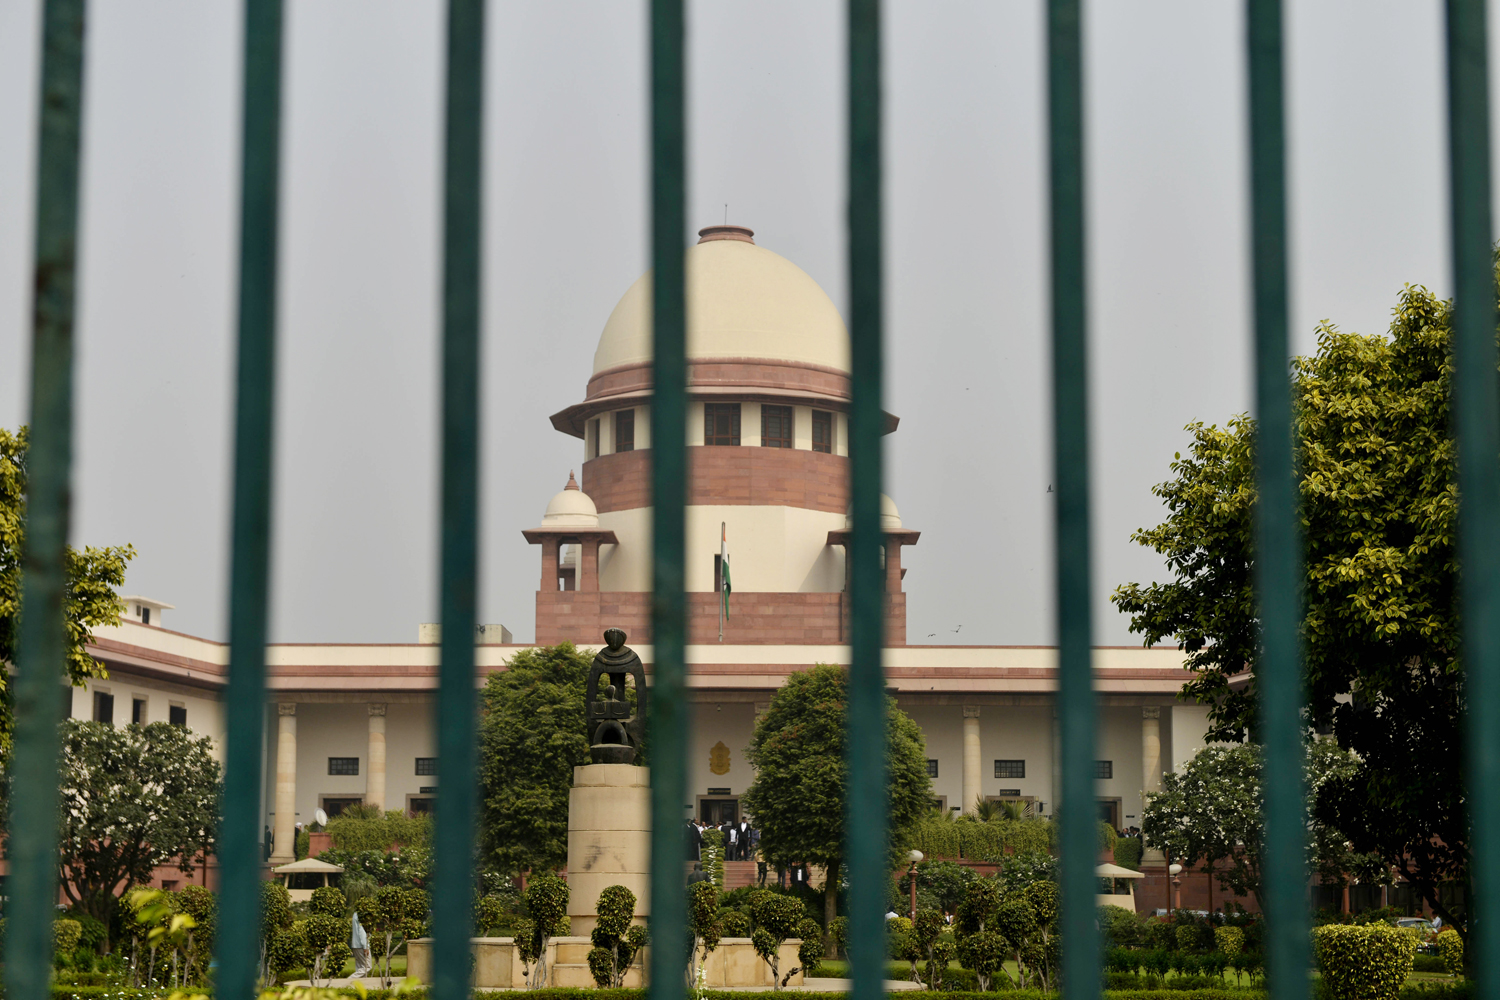 Earlier, the apex court had stayed undergraduate medical and dental admissions in the country after the CBSE, which conducted the exam, appealed against the high court's July 10 verdict.